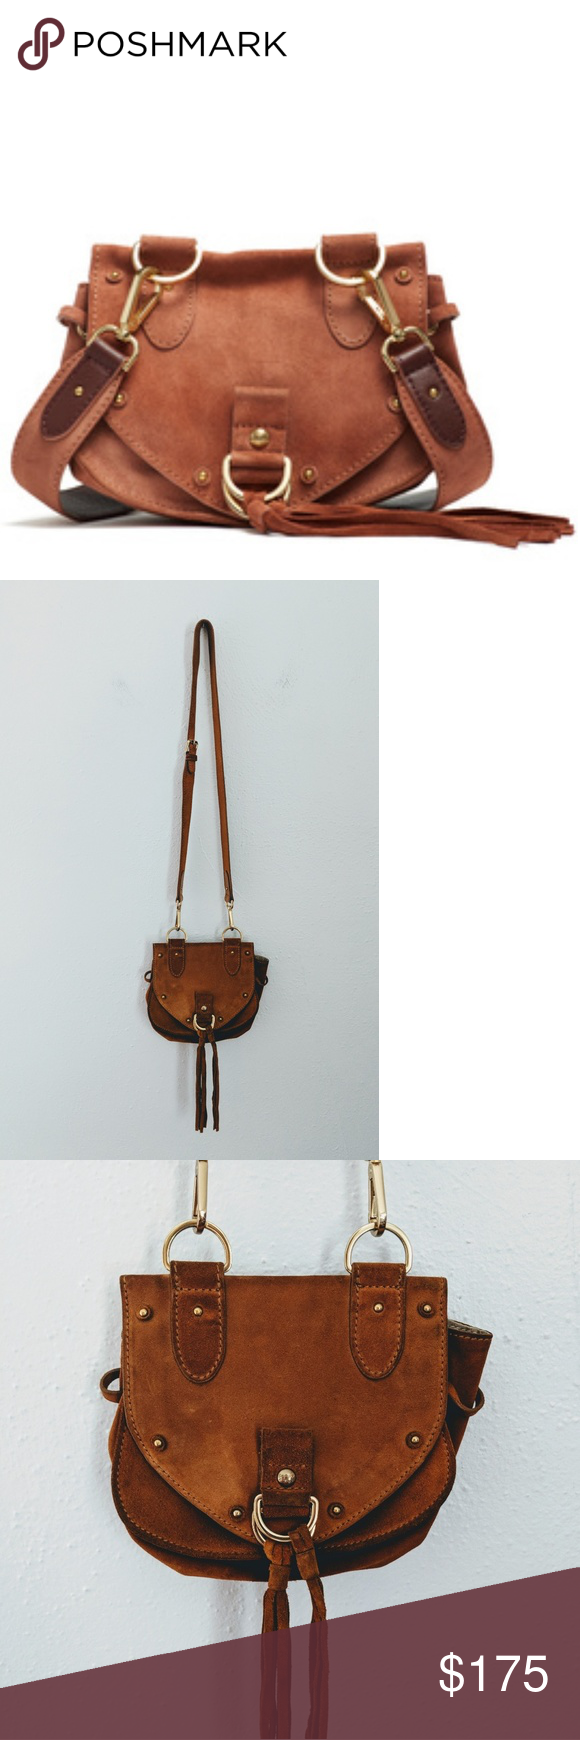 See By Chloe Terracotta Collins Crossbody Bag EUC. See By Chloe Terracotta Collins crossbody bag. Bag measures approximately 19.75 drop, 6.25 height, 8 length, and 3.75 depth. Includes dust bag and authenticity card. See By Chloe Bags Crossbody Bags #seebychloe